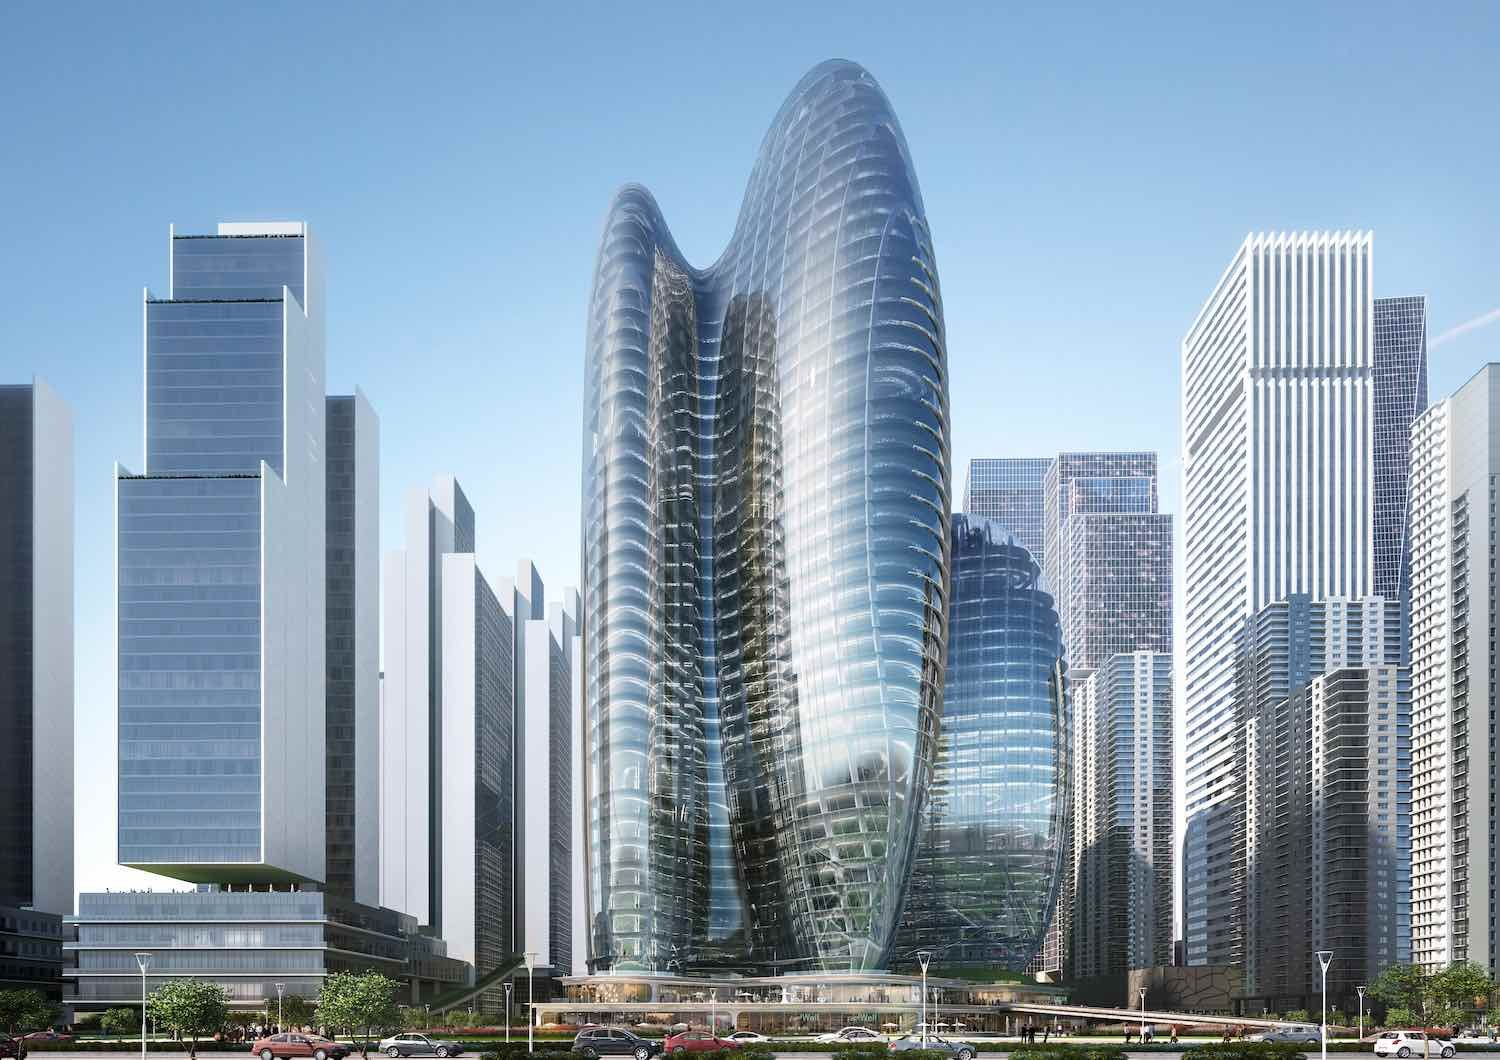 Zaha Hadid Architects' OPPO Headquarters in Shenzen - Image by Zaha Hadid Architects.